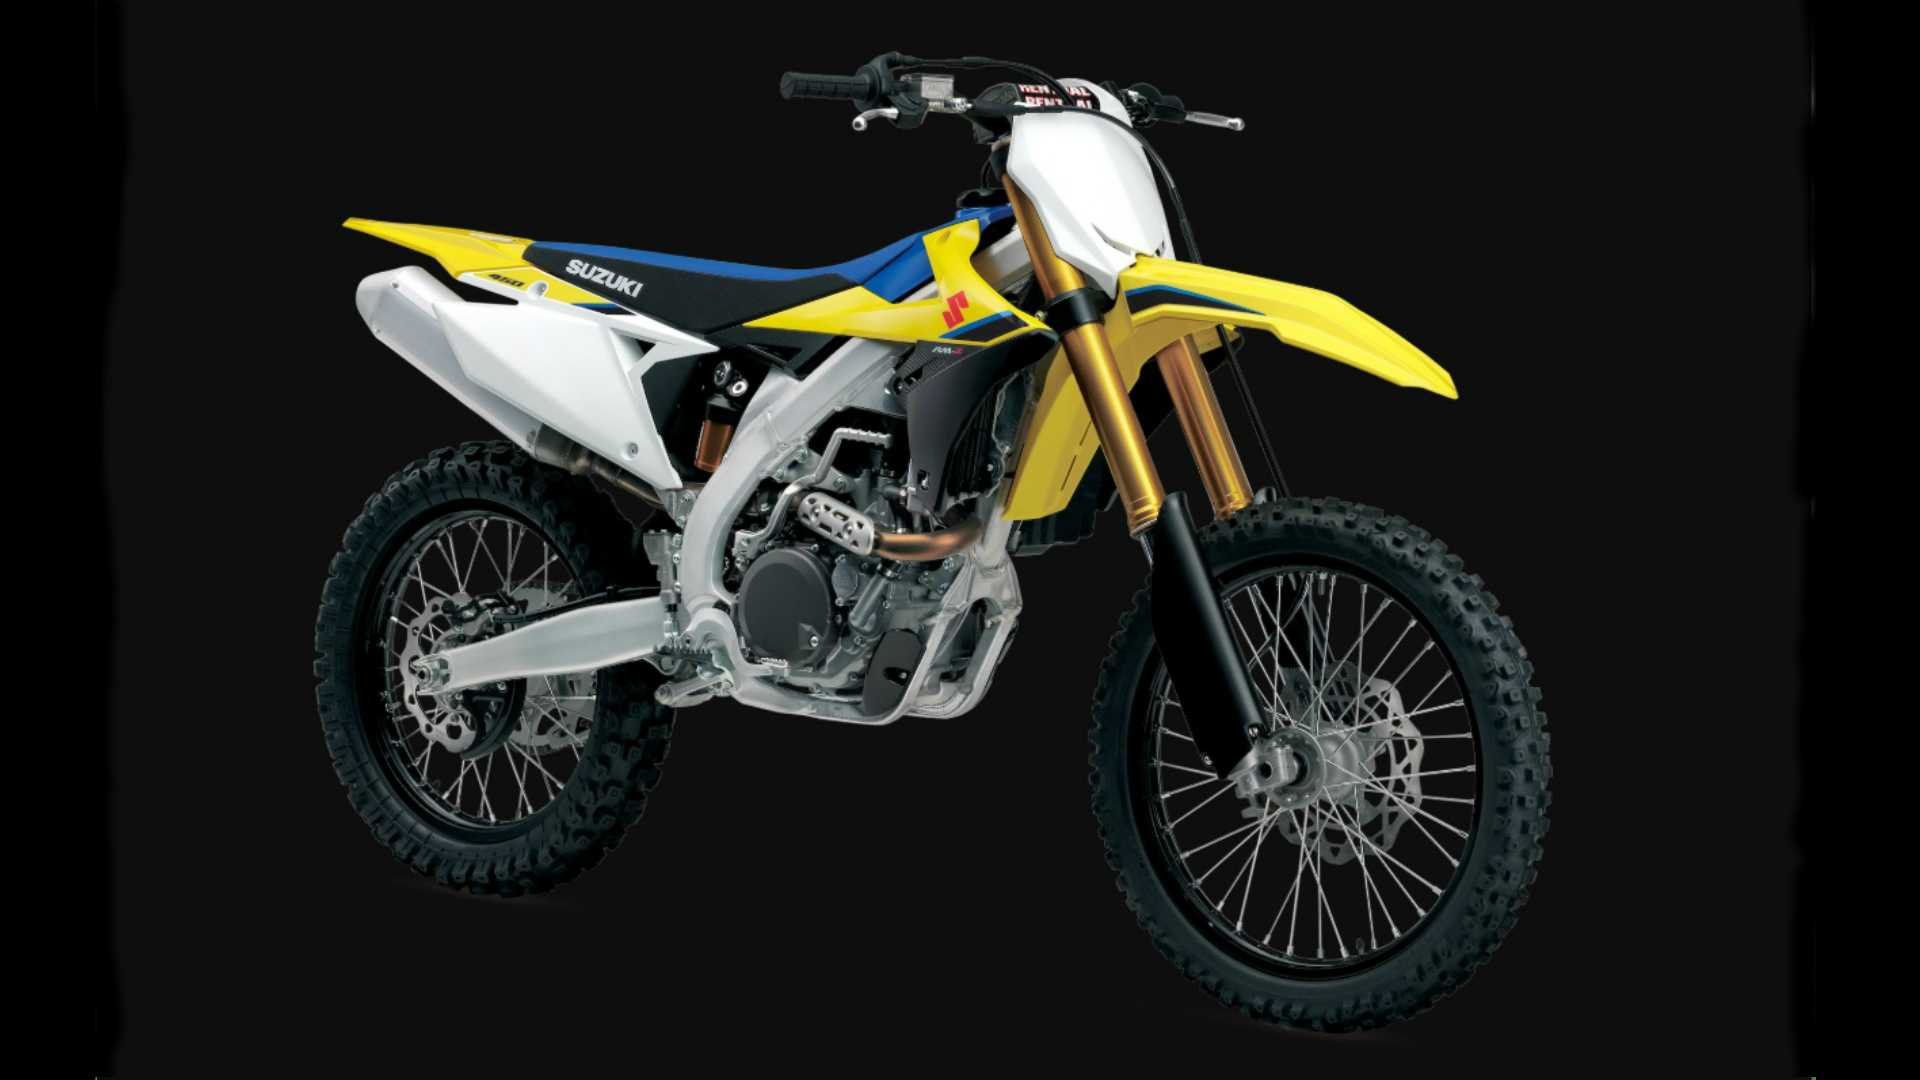 Suzuki Introduces Their 2020 Off Road Motorcycle Lineup